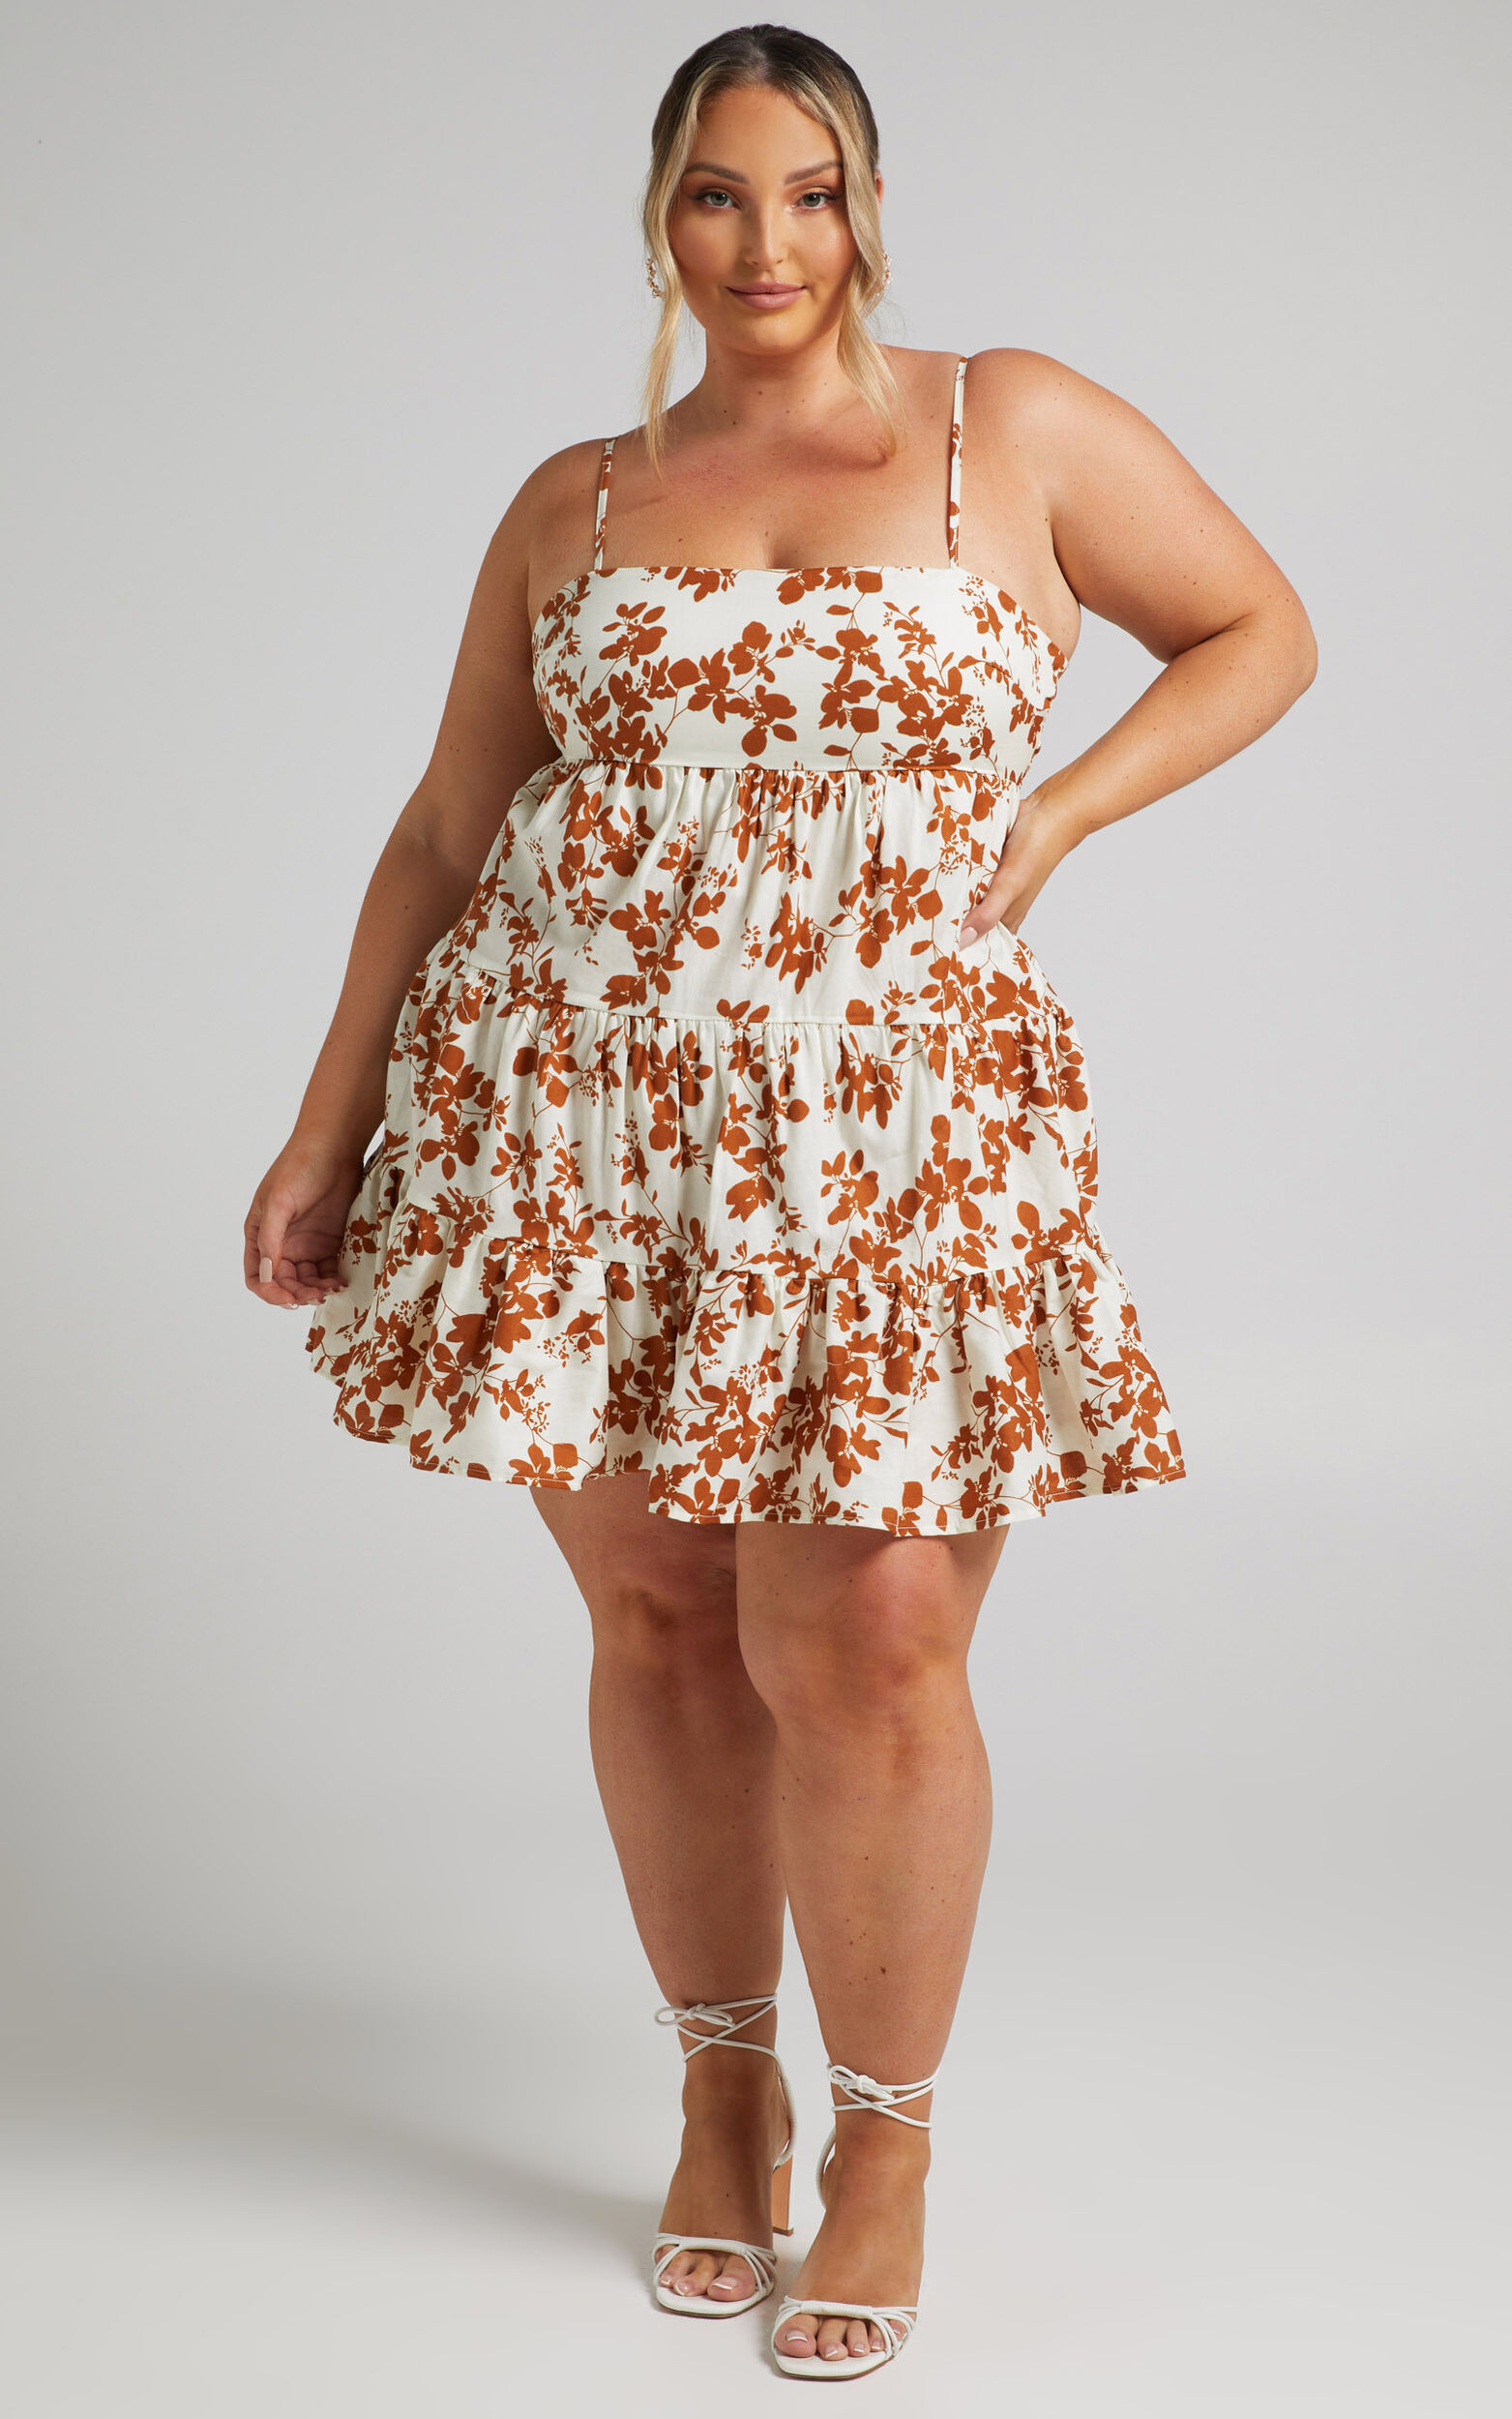 Lorelle Straight Neck Tiered Mini Dress in Shadow Floral - 04, BRN1, super-hi-res image number null